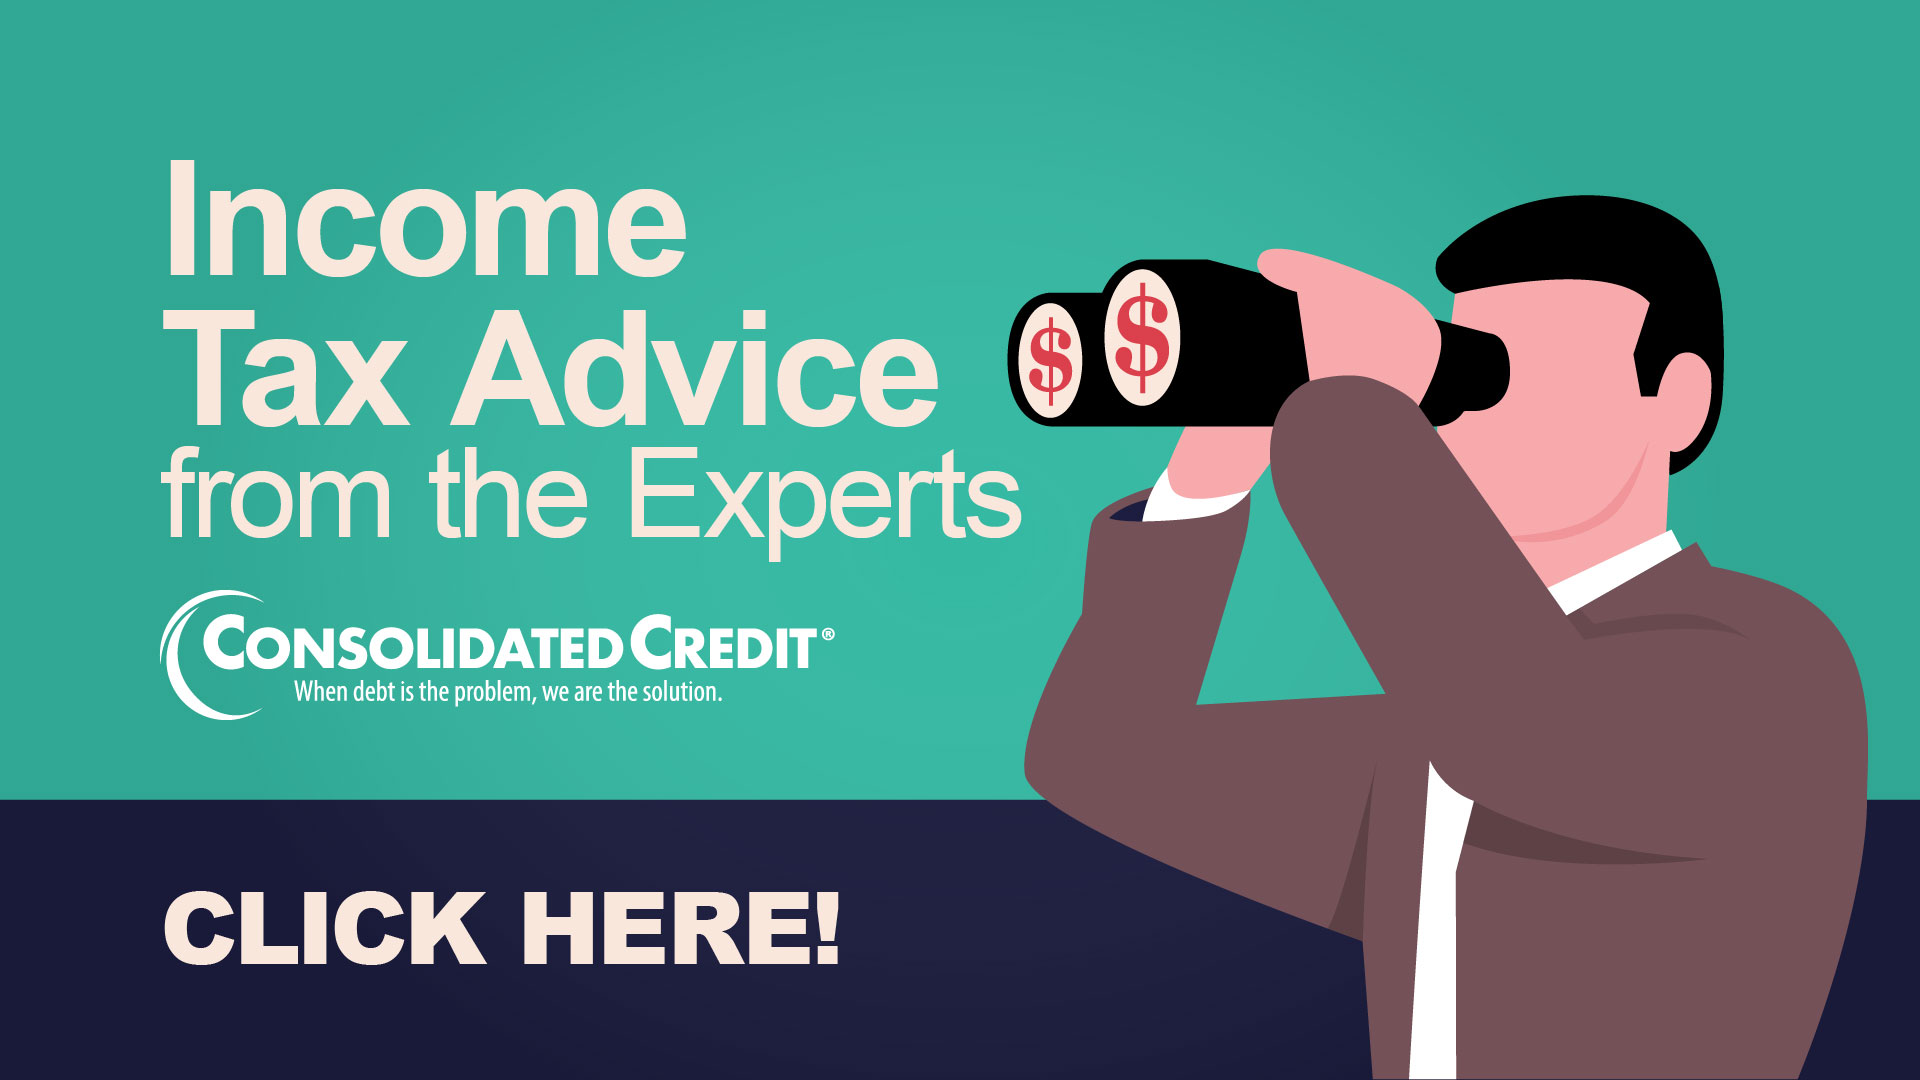 Income Tax Advice from the Experts: Click Here!